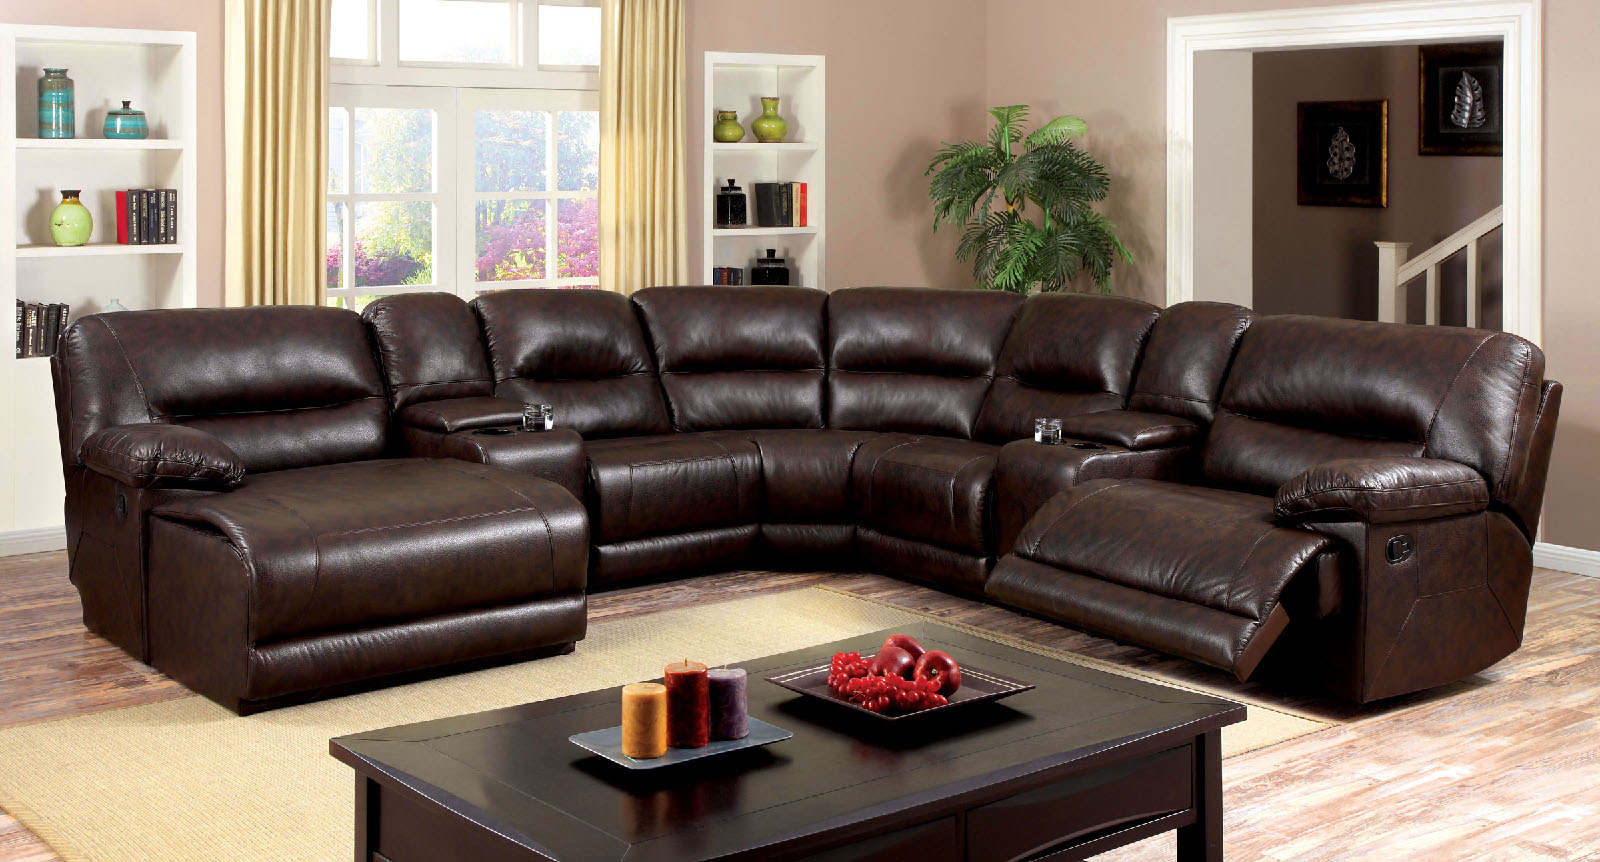 Glasgow Sectional By Furniture Of America Cm6822br